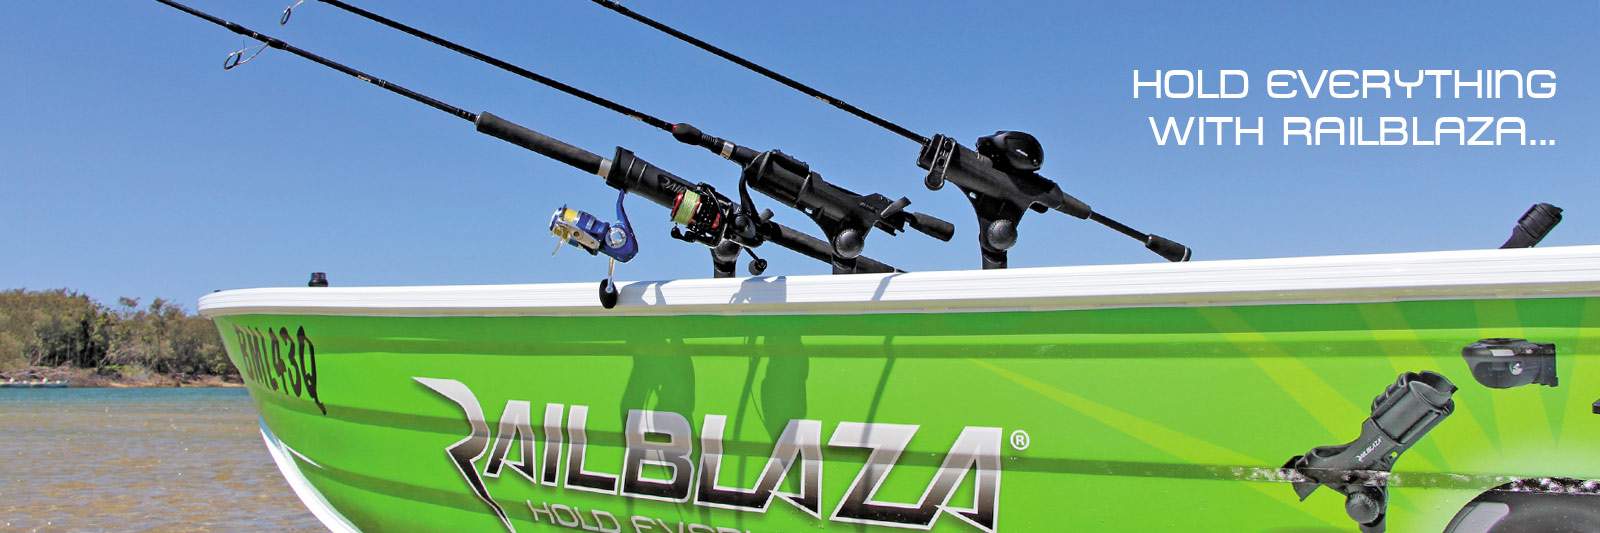 hollandlures Railblaza holds everything